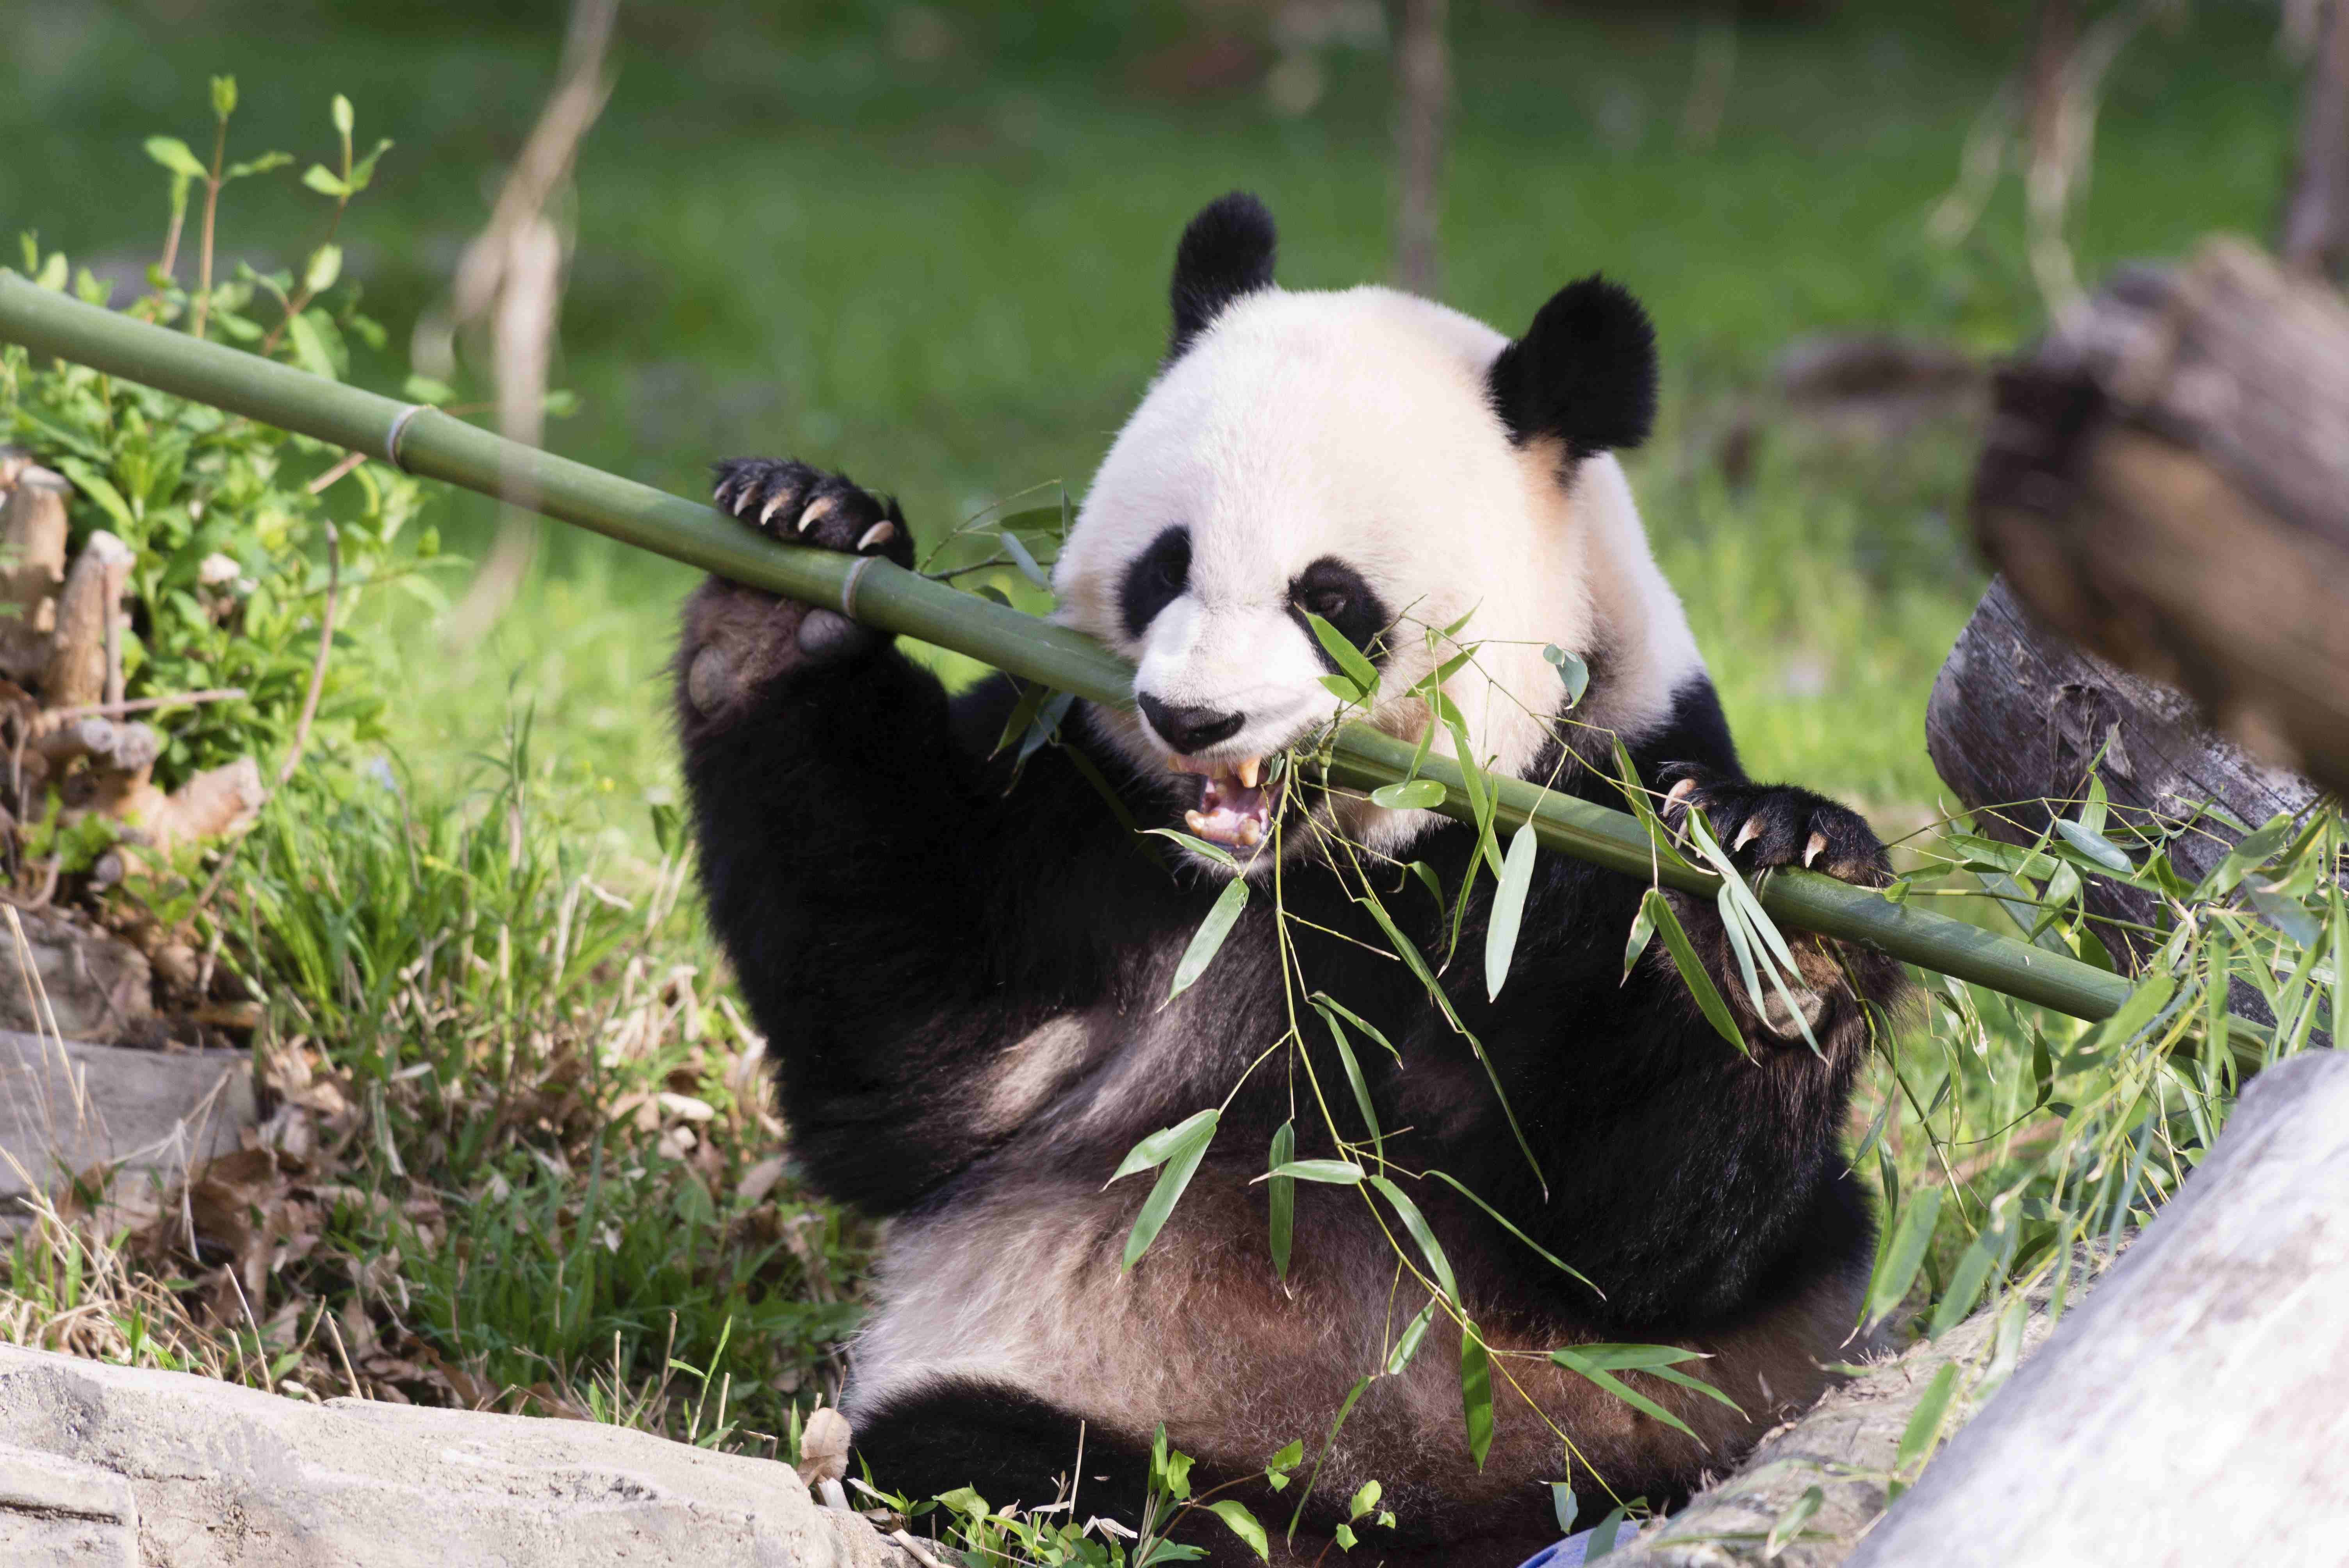 Giant Panda Mei Xiang snacks on bamboo at the Snithsonian's National Zoo in Washington on April 19, 2015.